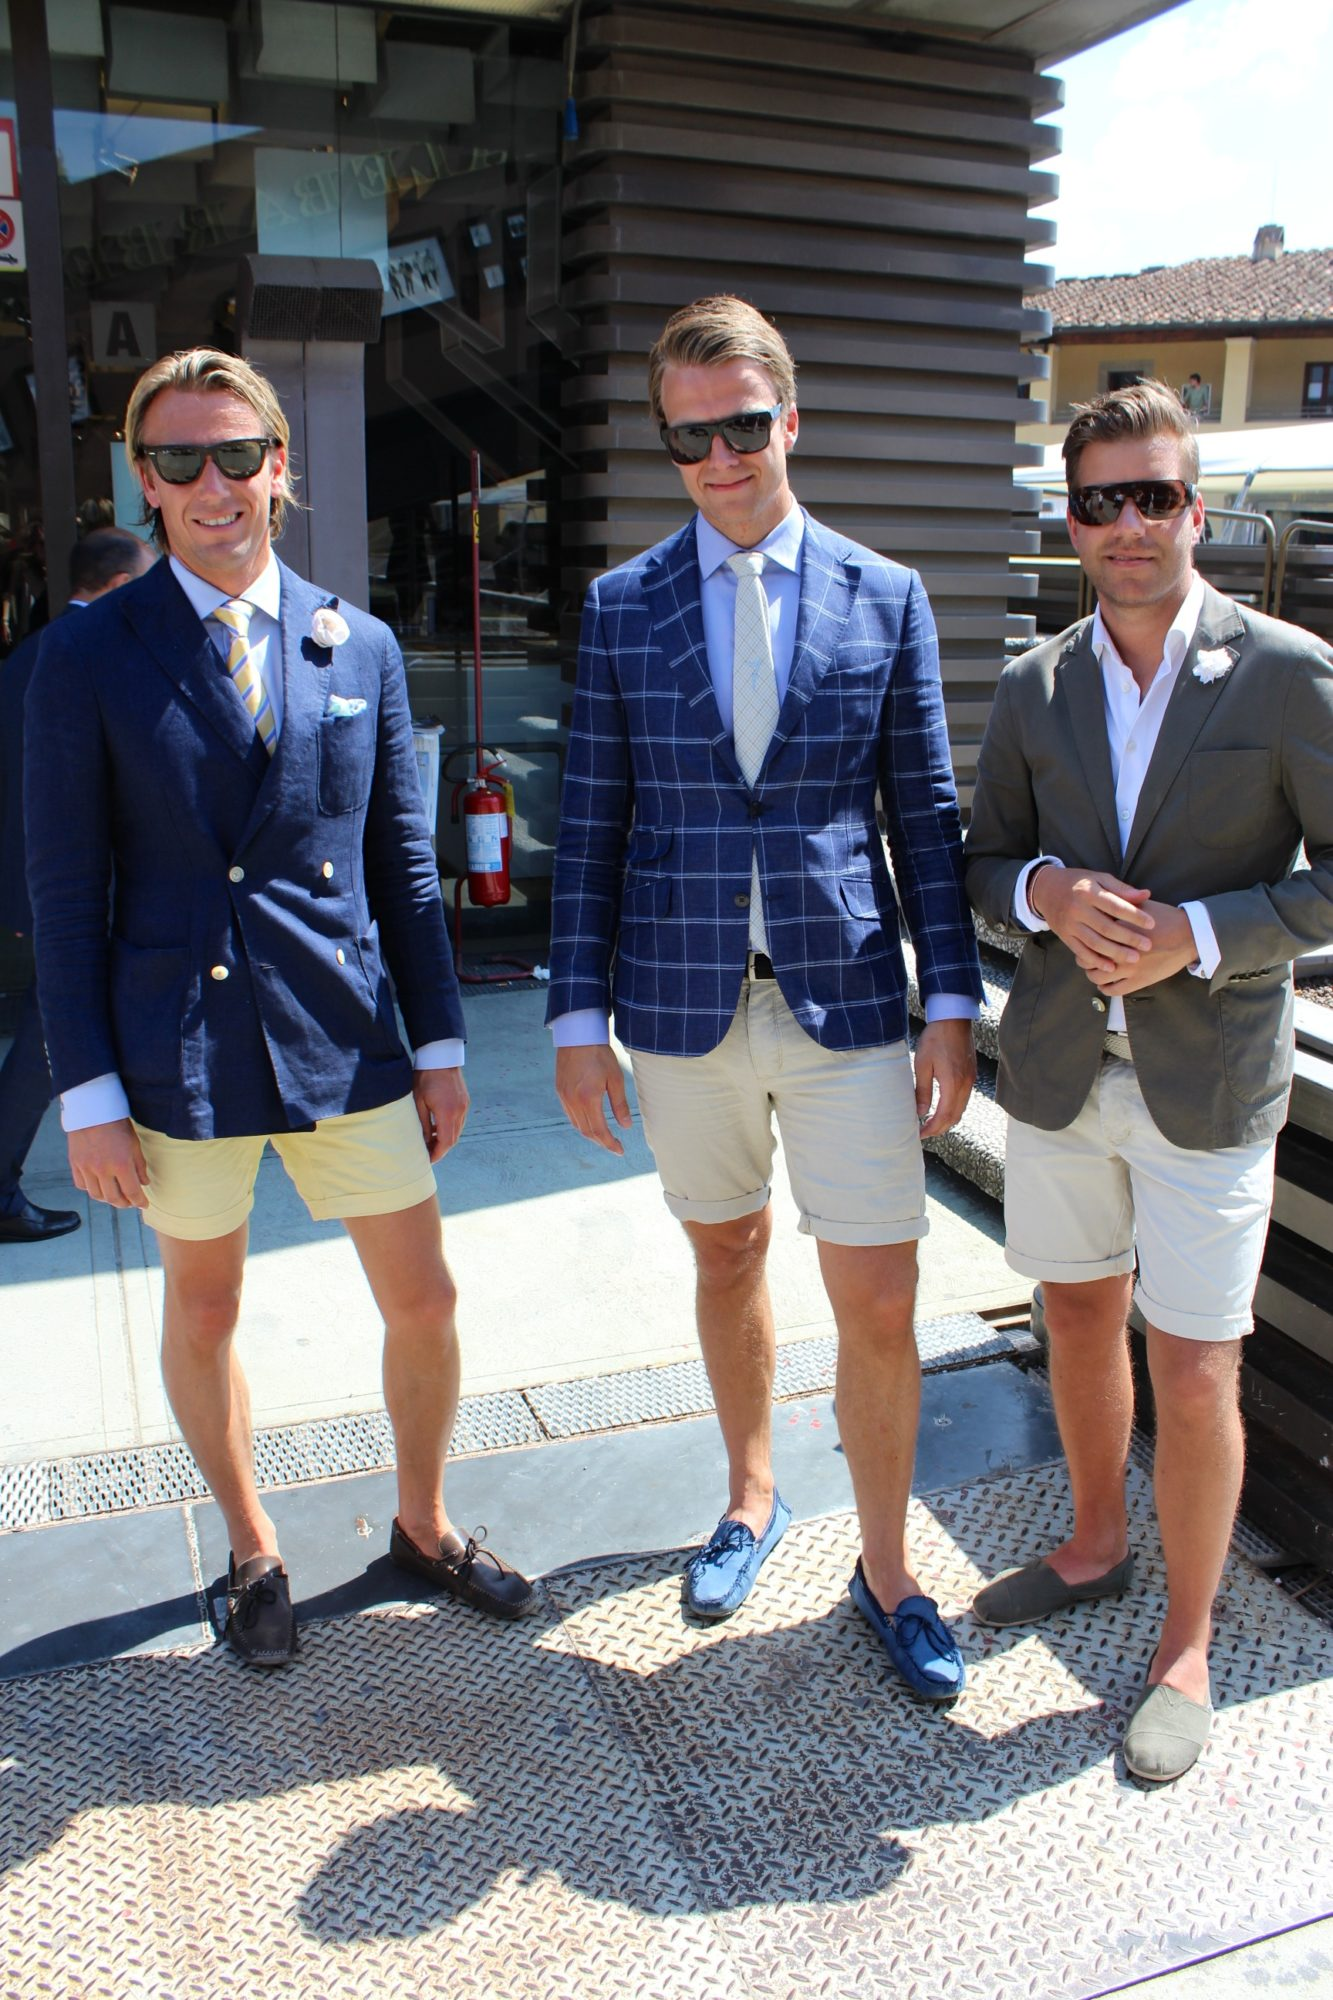 Men's Fashion Pitti Uomo 84 2013 Suit Jacket with Shorts